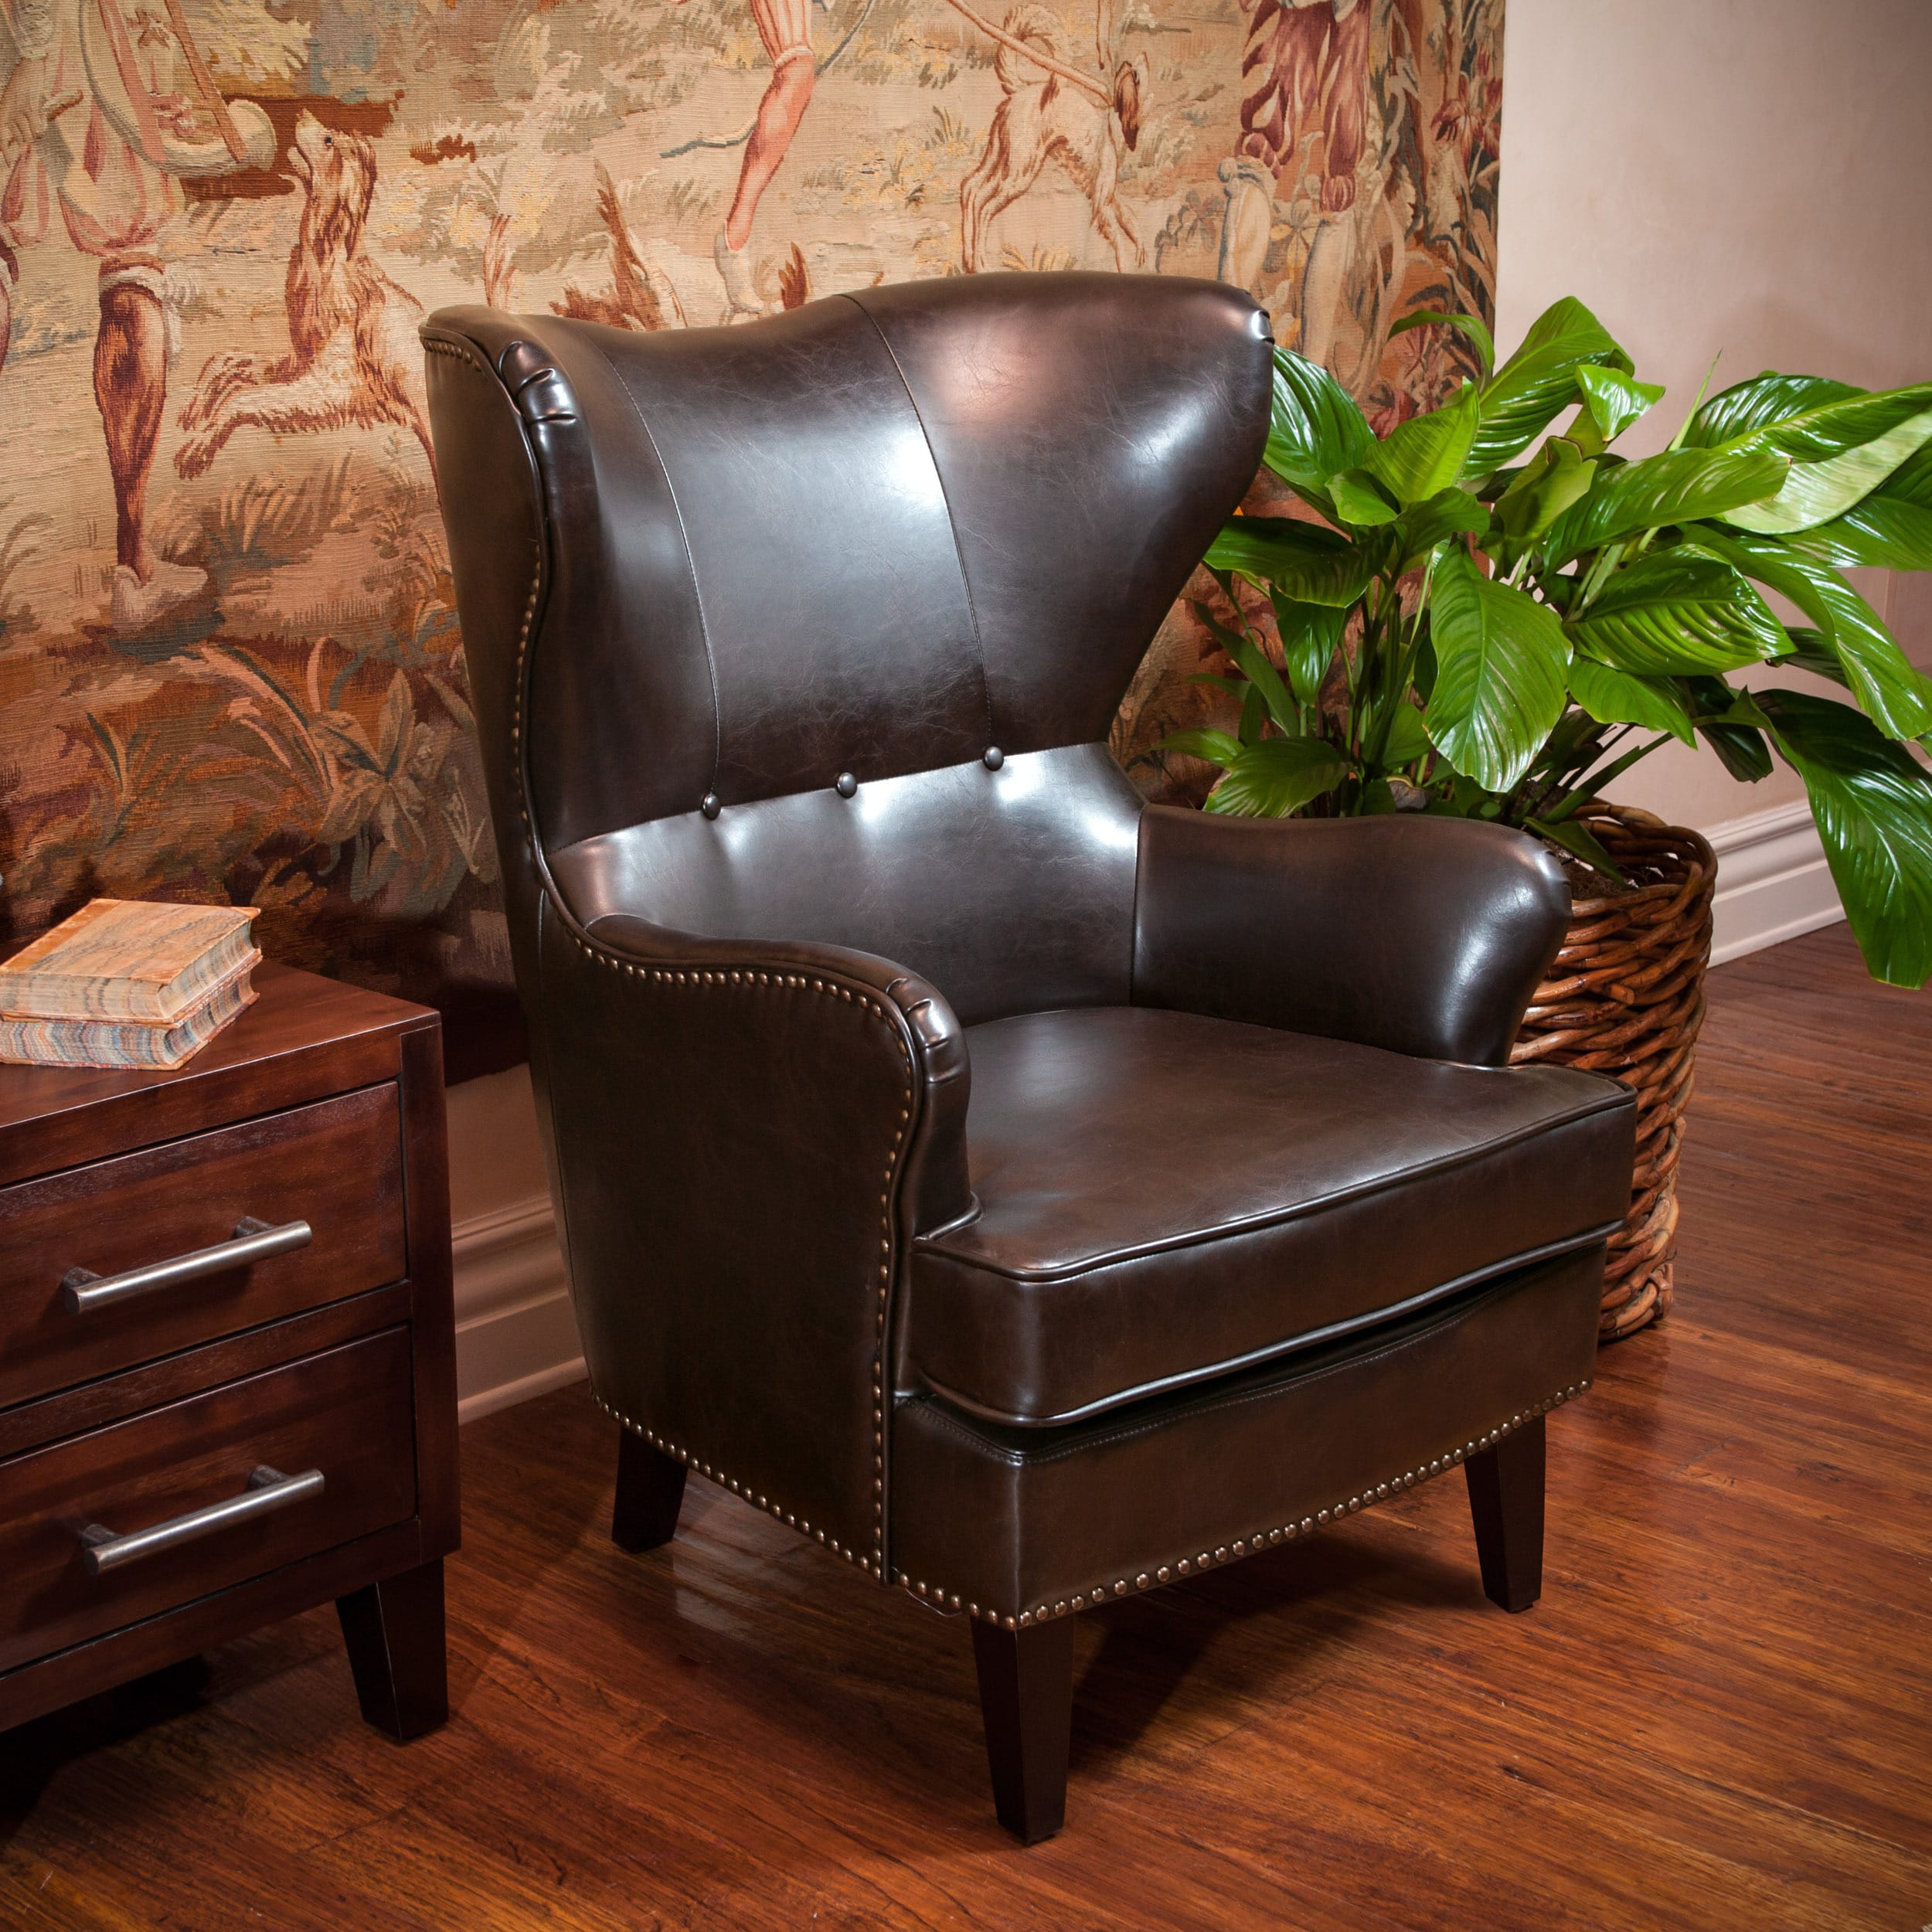 christopher knight leather chair rail molding ideas home warner bonded high back